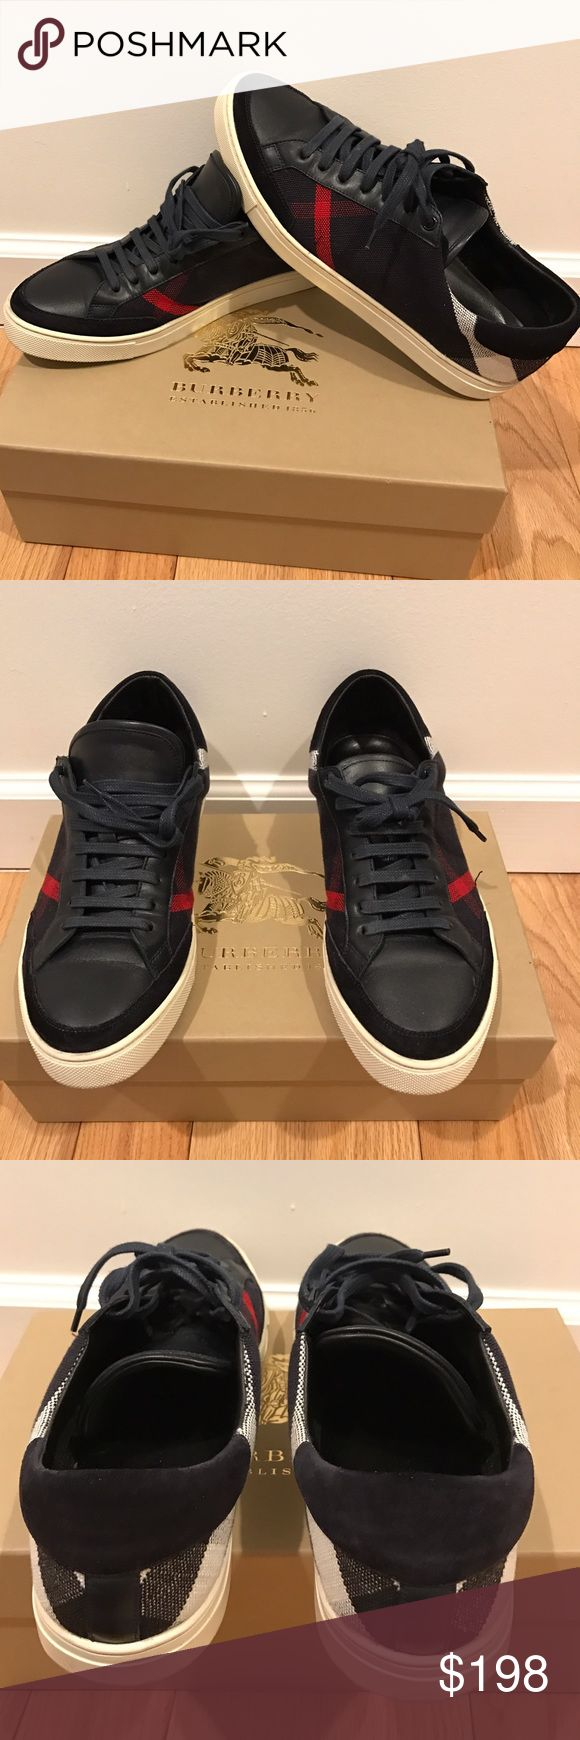 Men's Burberry Shoes which is an equivalent of a 10.5 us size. Good condition Burberry shoes for men that were very well taken care of. I would wipe them after every time my husband wore them. There navy blue (but can literally almost pass as black) with red and white. Ask questions if your a serious buyer. Burberry Shoes